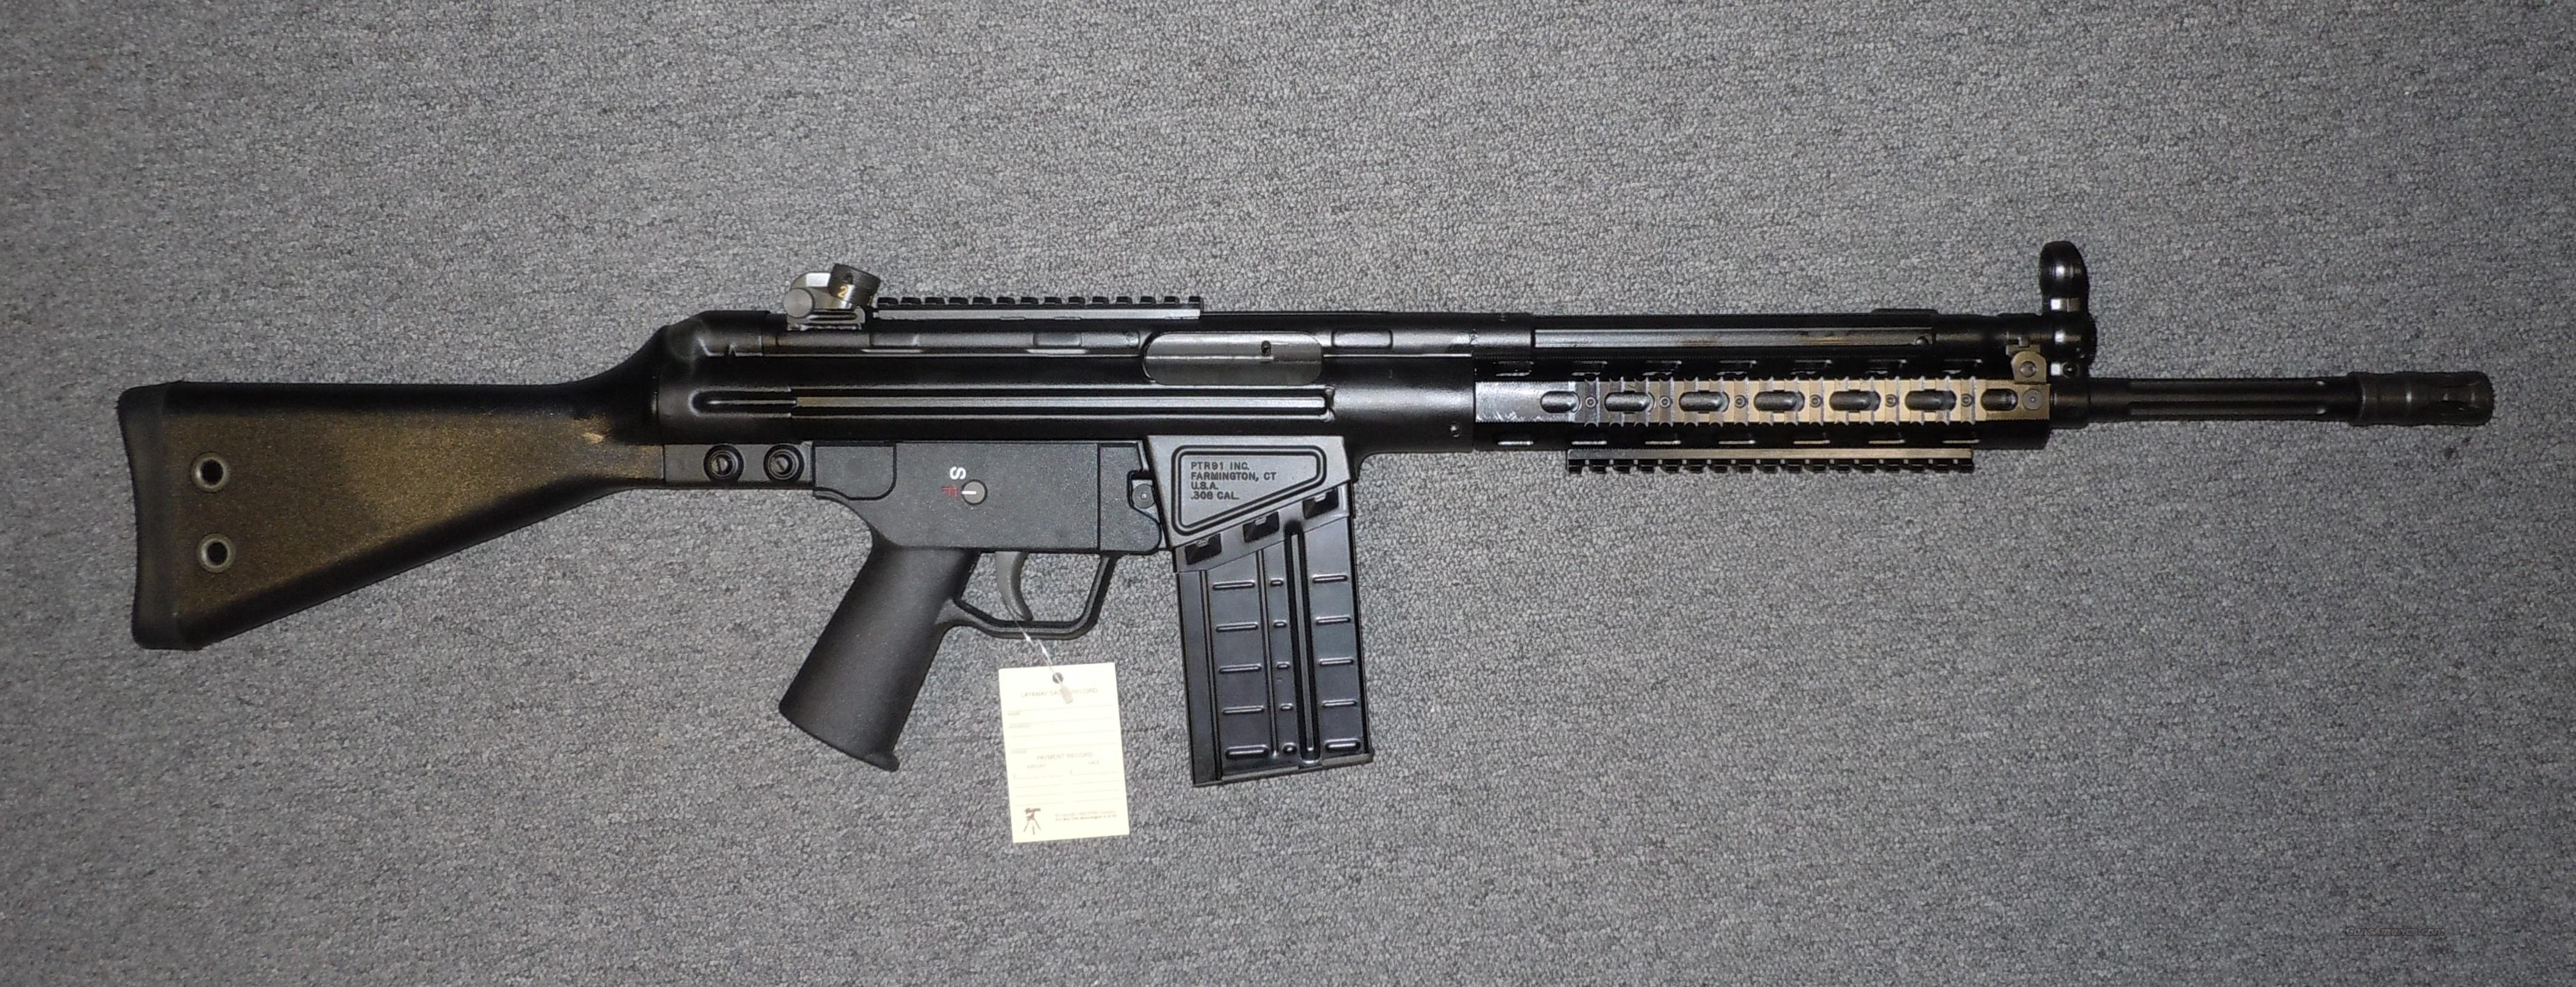 PRECISION TACTICAL RIFLES PTR-91 SC (SQUAD CARBINE)  7.62 X 51 (308WIN) RIFLE WITH FLUTED BARREL AND FOREARM RAIL, VERY NICE HK 91 CLONE    Guns > Rifles > PQ Misc Rifles